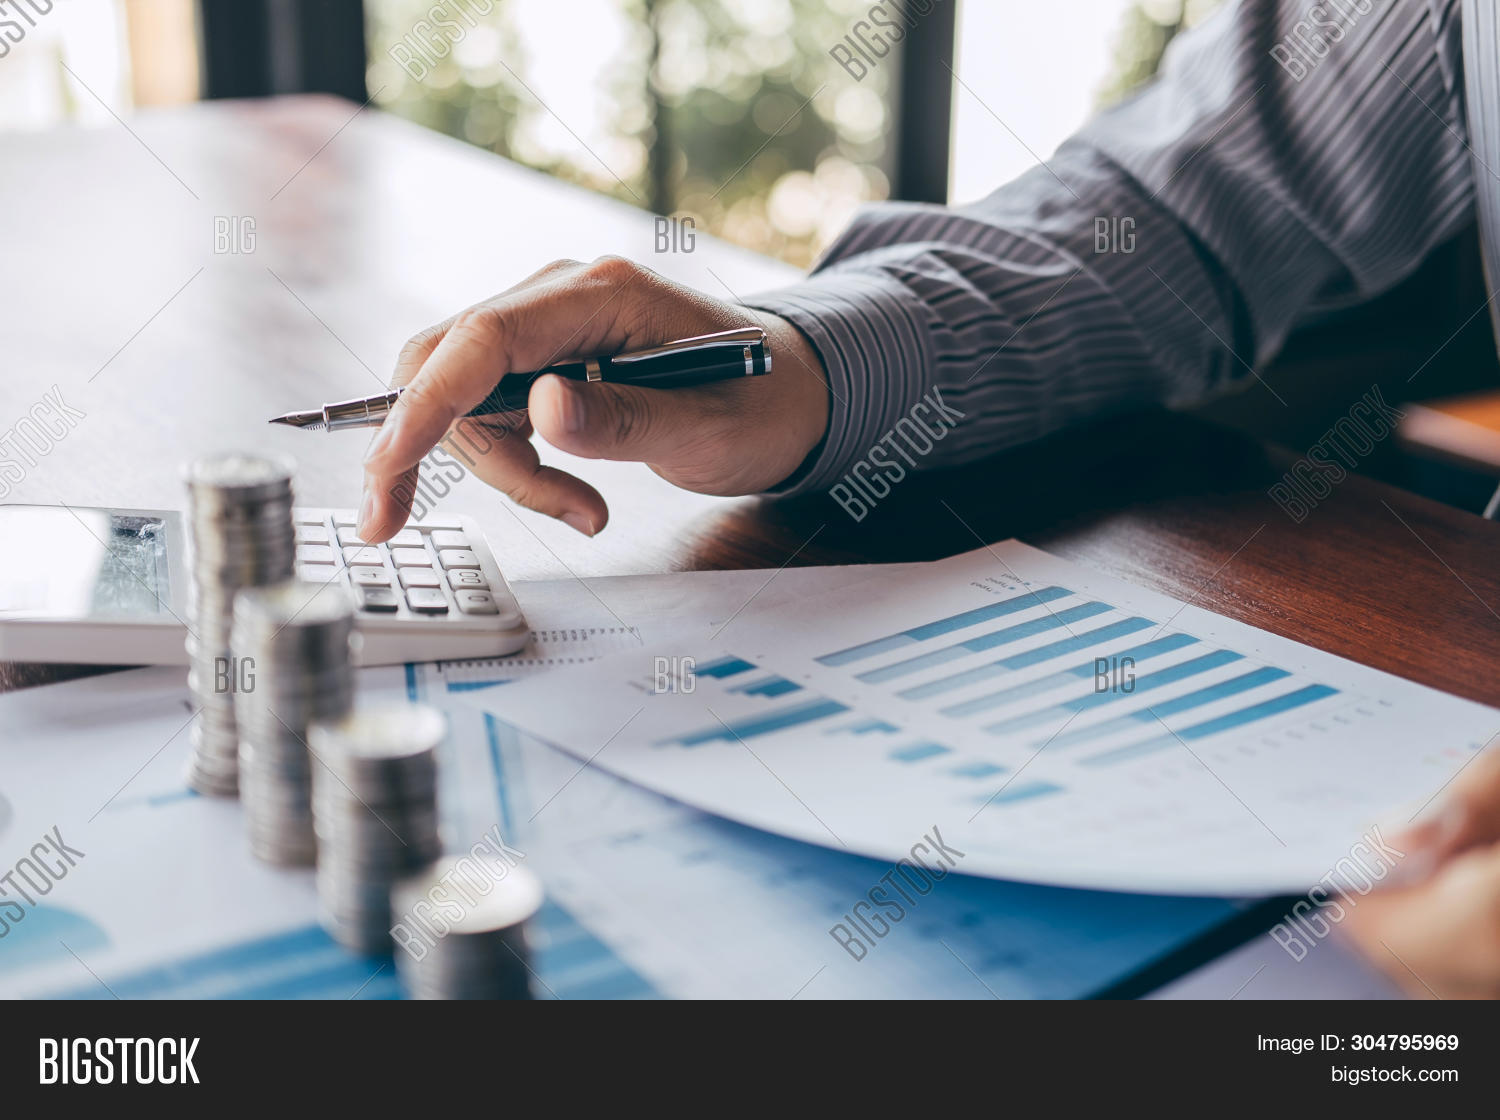 account,accountant,accounting,analysis,analyzing,audit,balance,banking,bookkeeper,budget,business,calculate,calculation,calculator,consulting,development,document,earnings,executive,finance,financial,funds,graph,growth,income,information,invest,investment,management,marketing,meeting,money,paperwork,planning,professional,profit,report,retirement,spreadsheet,stack,statistics,stock,strategy,success,talking,tax,teamwork,wealth,working